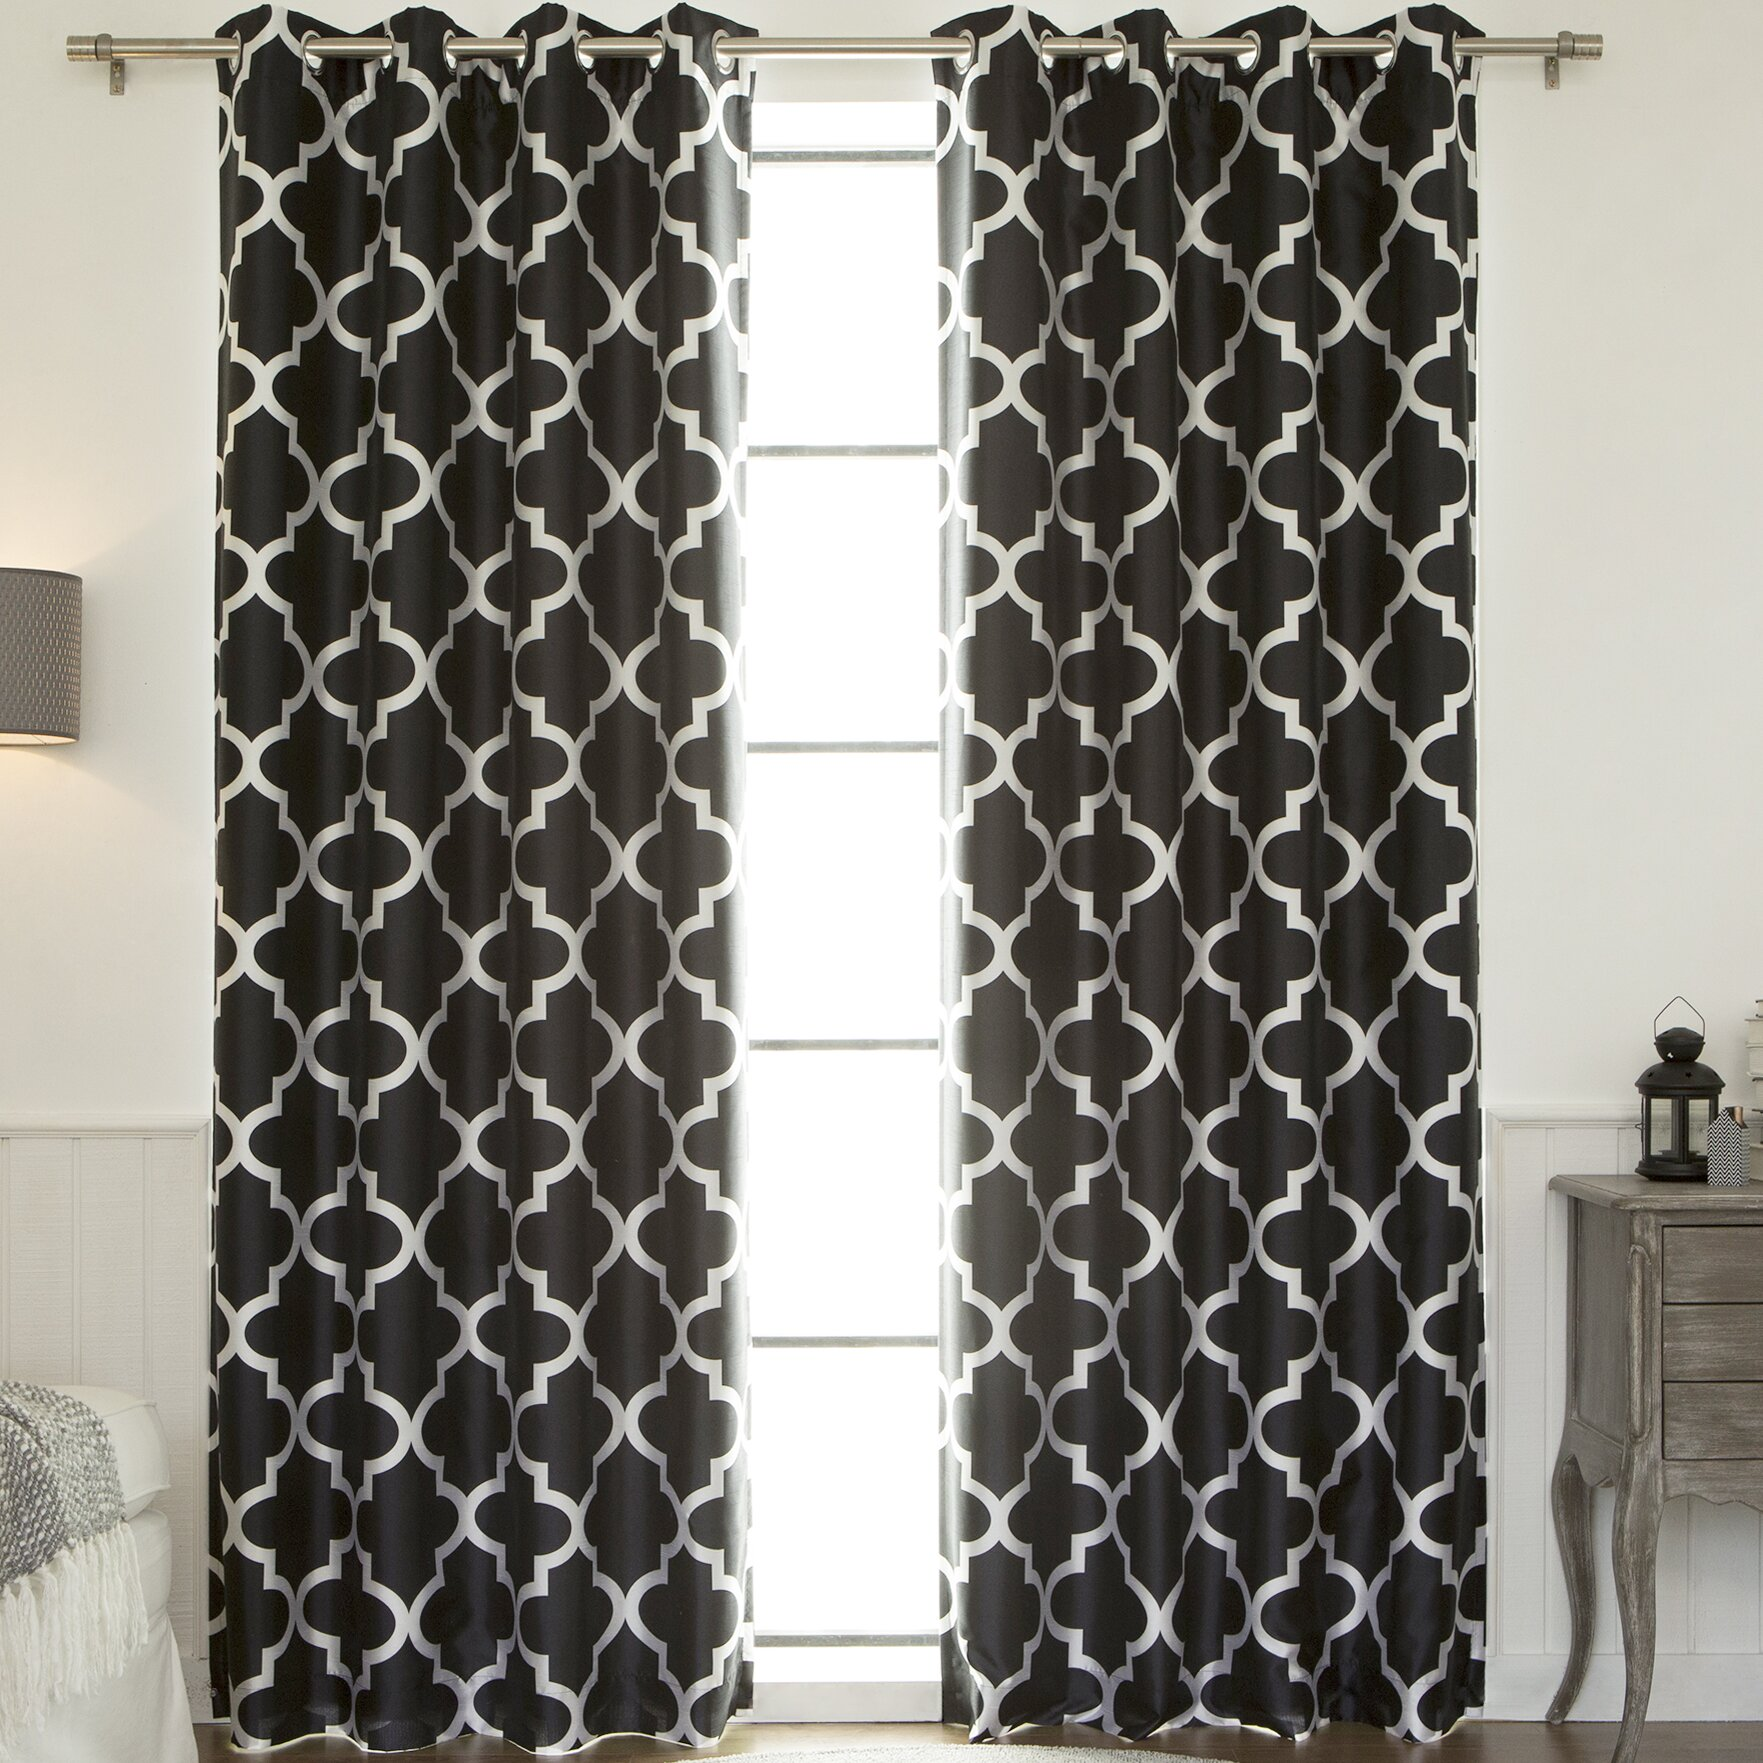 94 quot length curtains amp drapes best home fashion inc sku behf1383